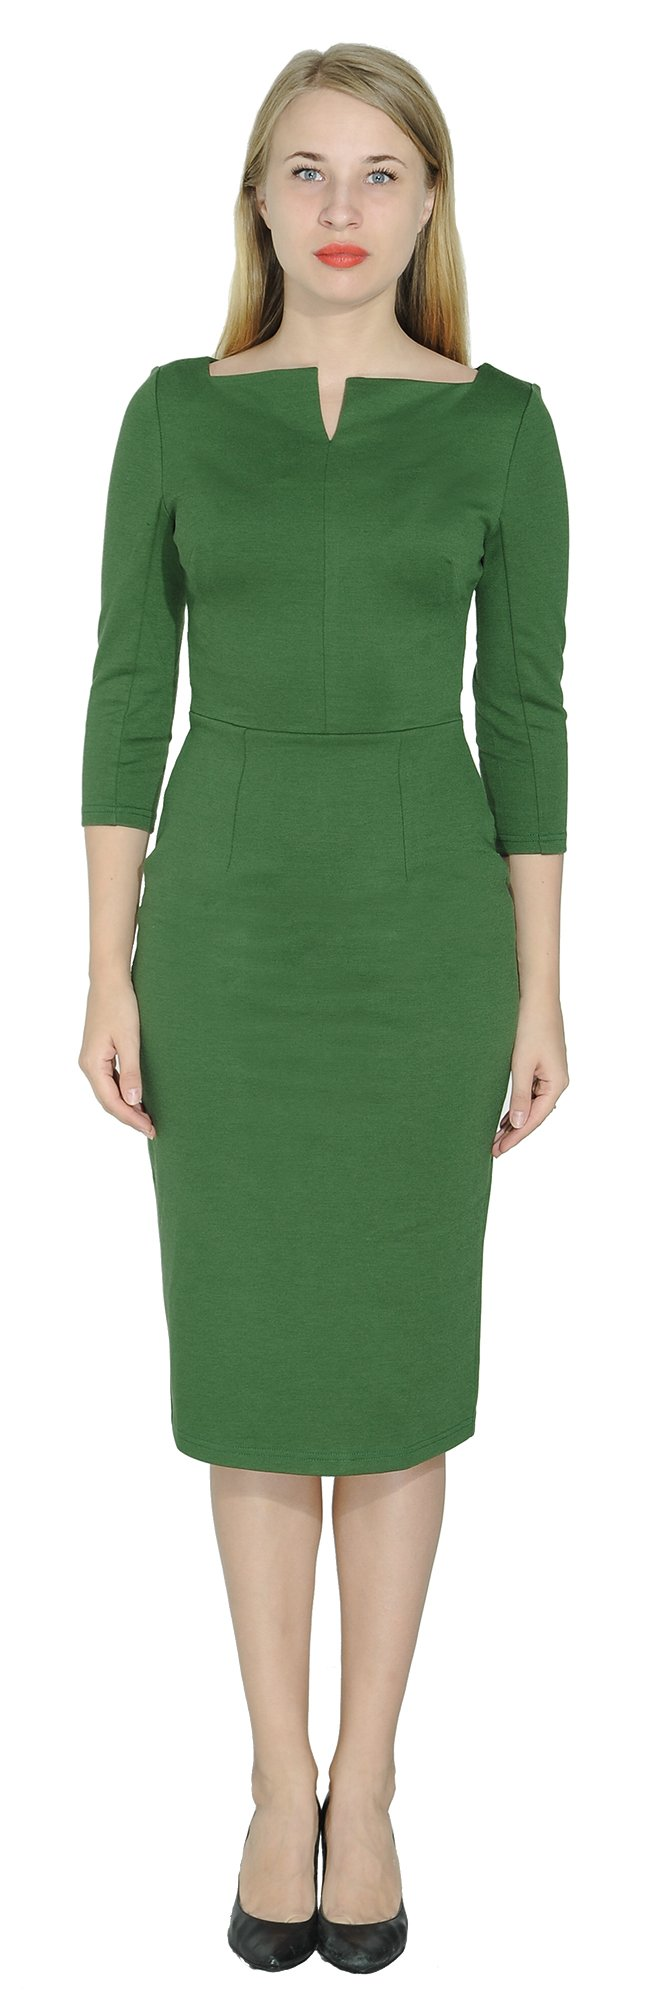 Marycrafts Women's Work Office Business Square Neck Sheath Midi Dress 12 Forest Green